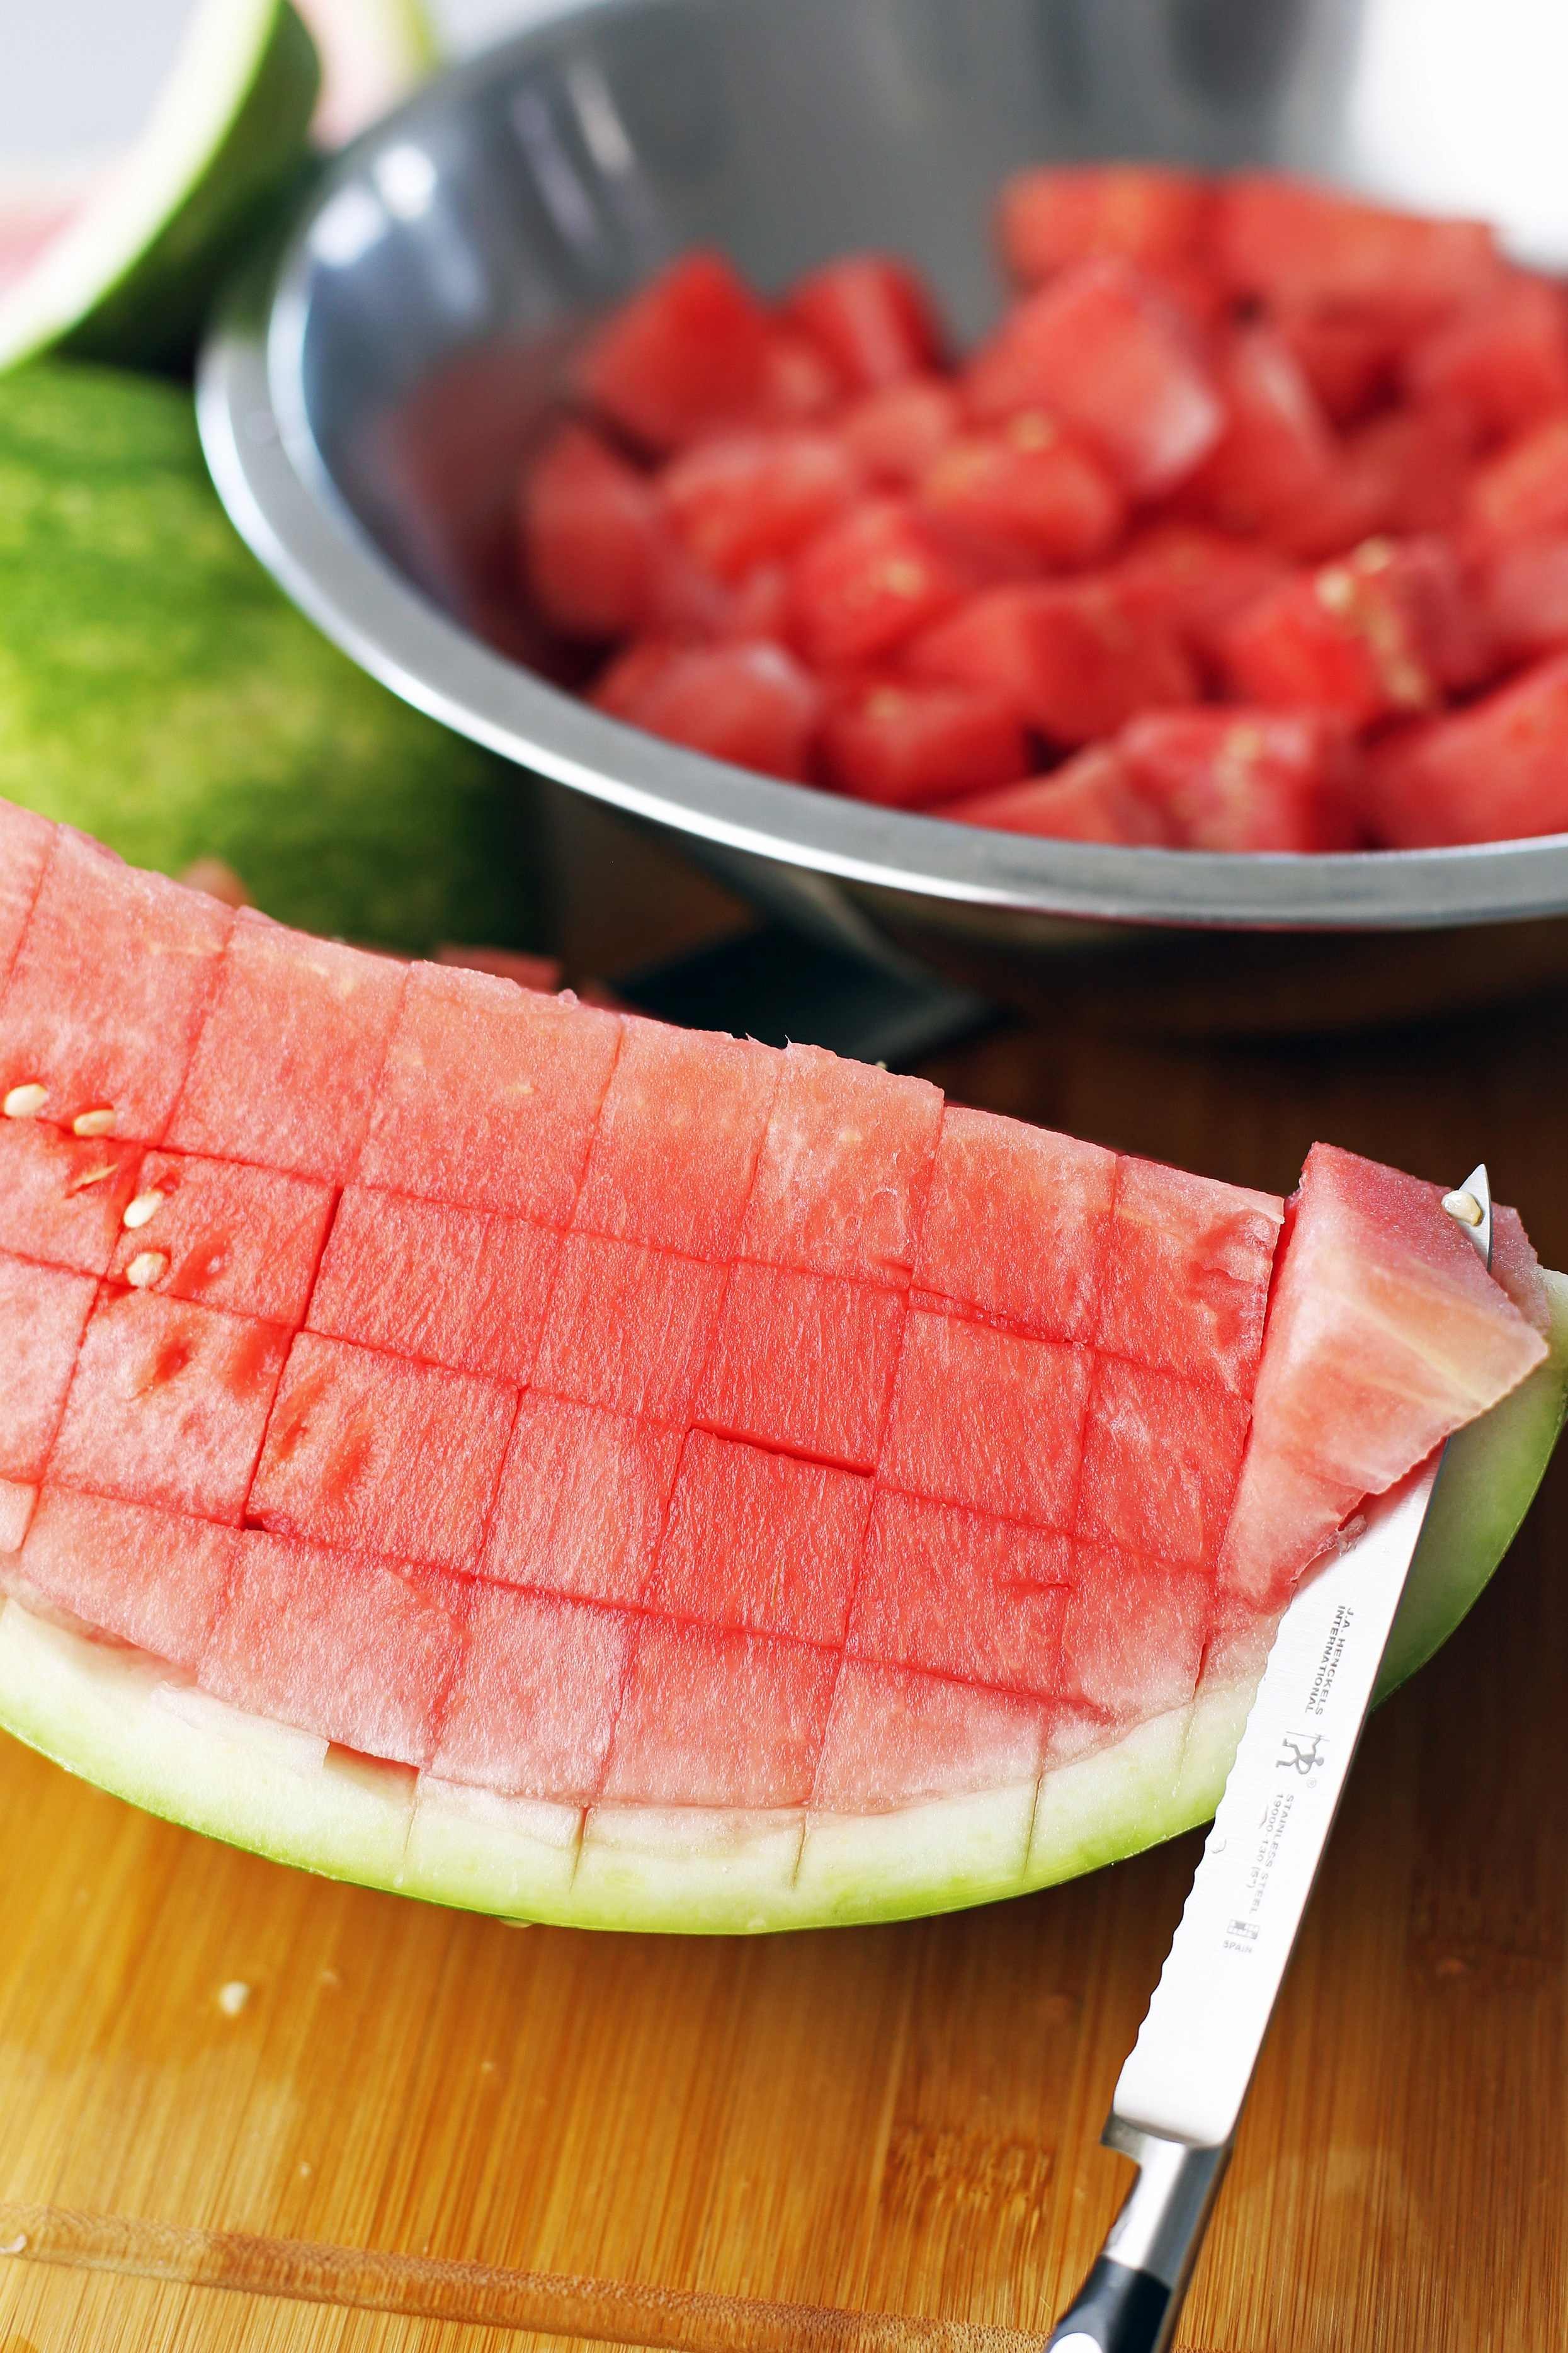 A quarter seedless watermelon with knife cuts in it with a serrated knife cutting into it.